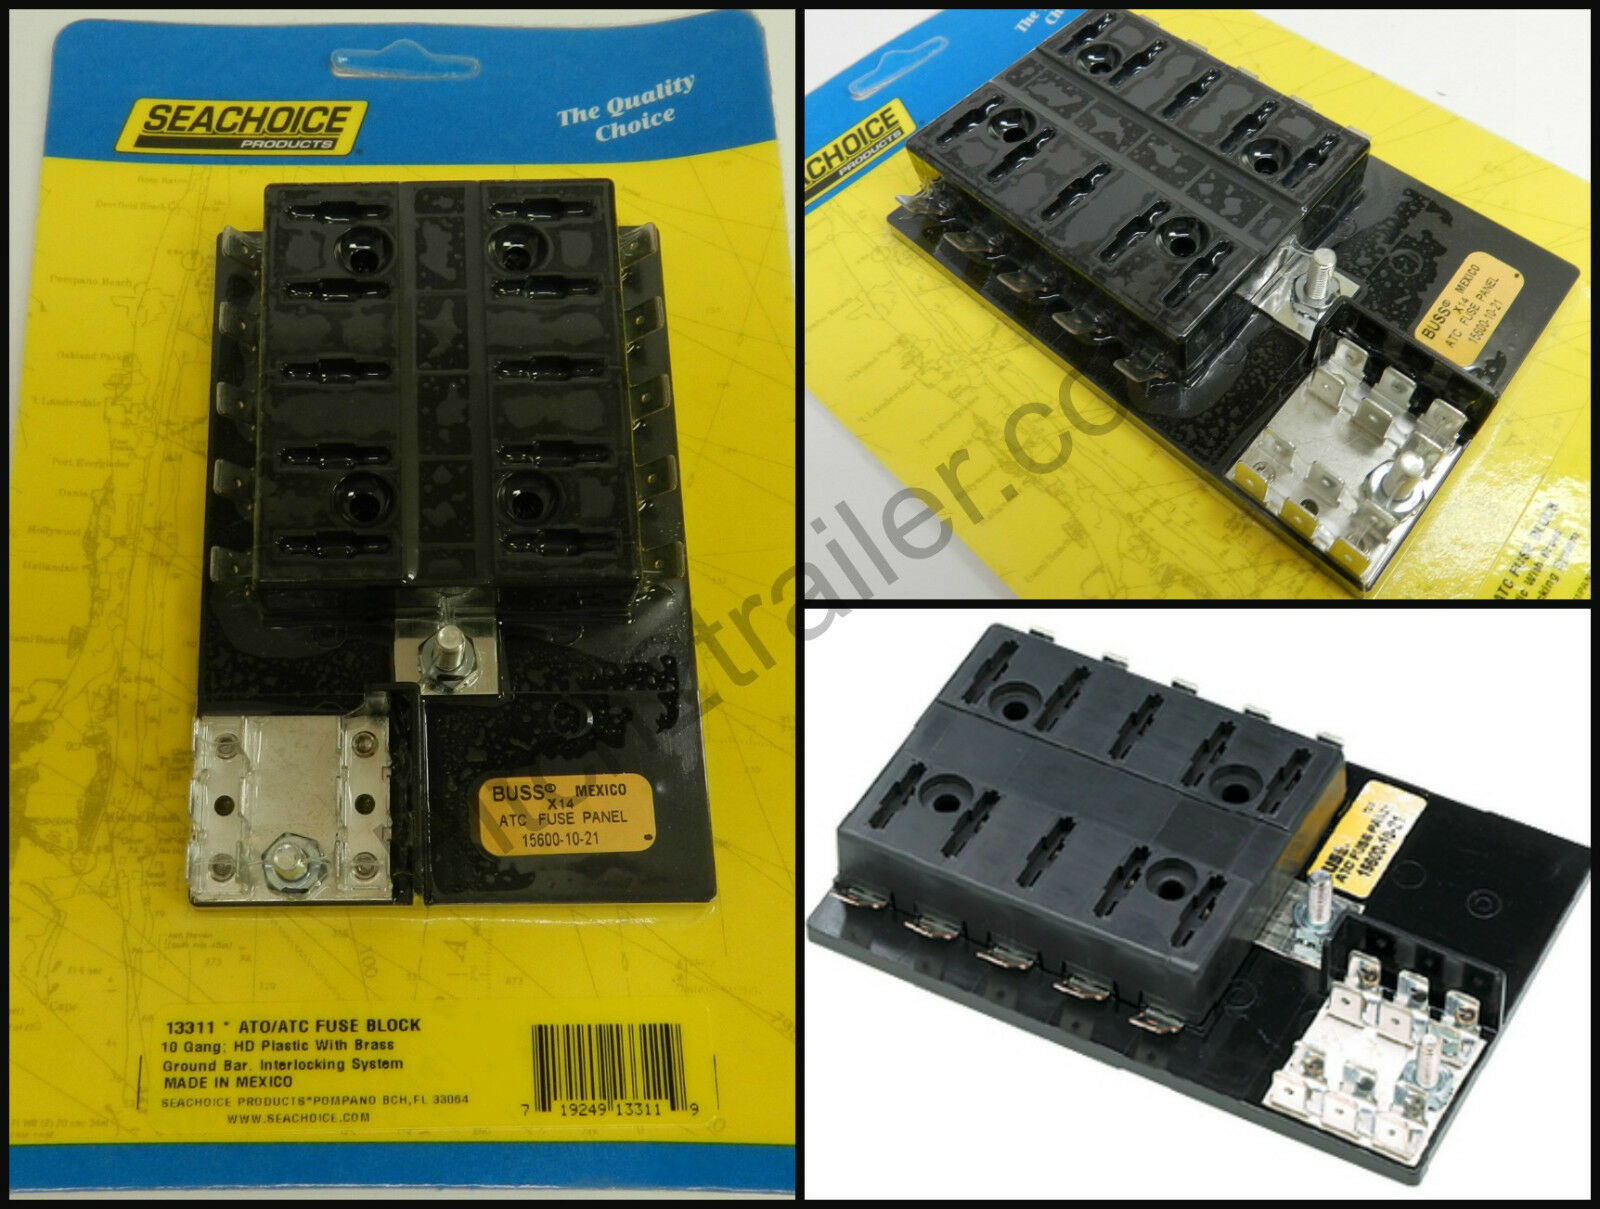 Ato Atc Marine Boat Rv Fuse Terminal Block 10 Gang Ground Buss Reset Box 1 Of 1only 4 Available